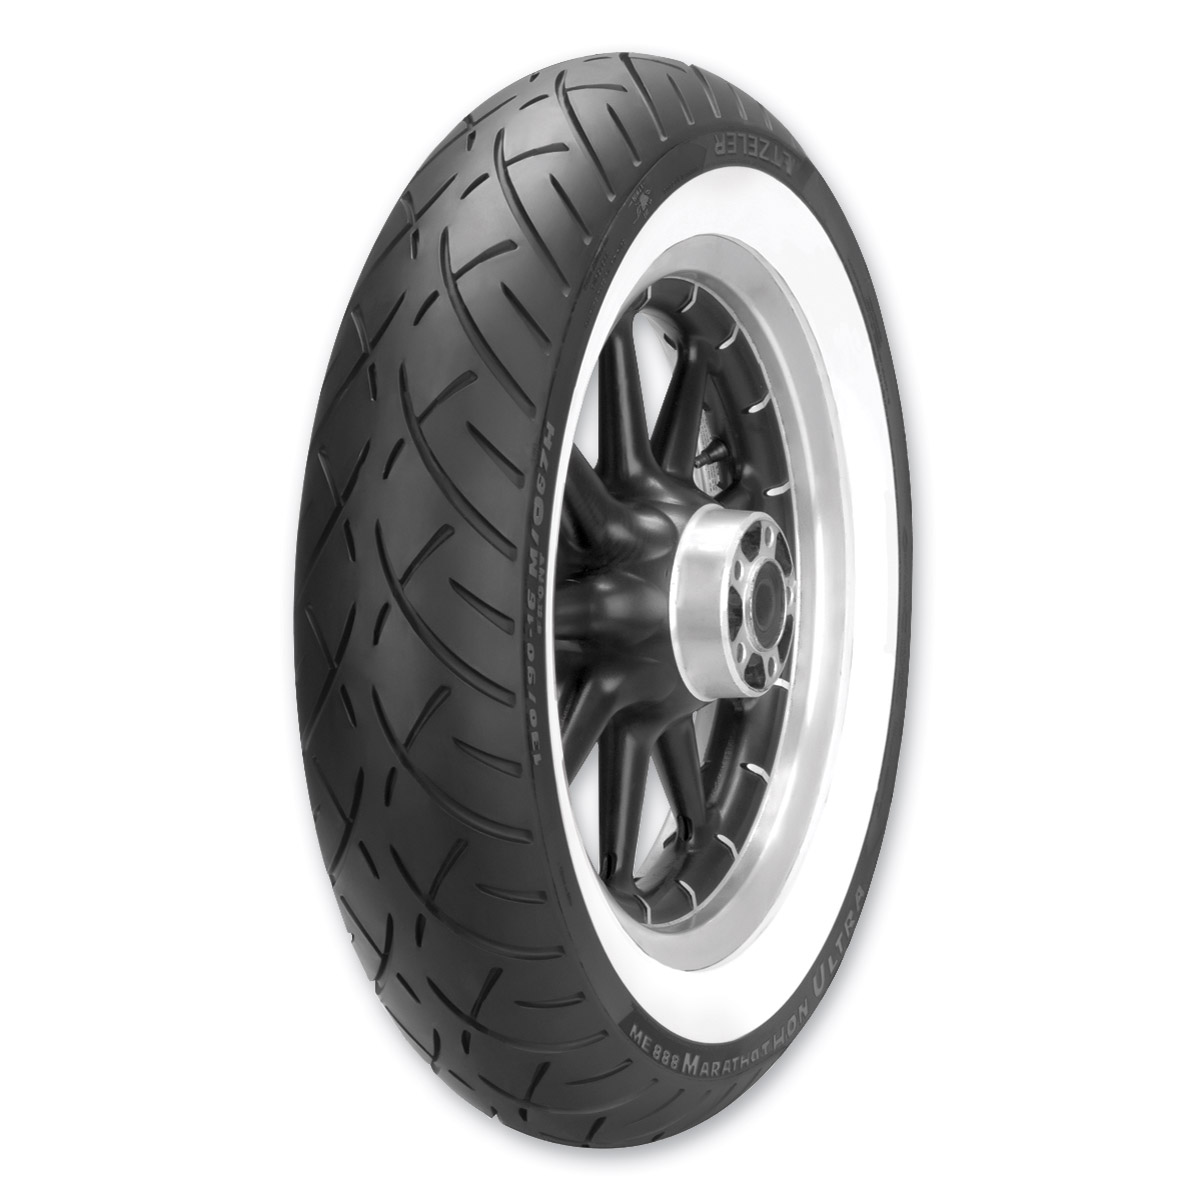 Metzeler ME888 100/90-19 Wide Whitewall Front Tire